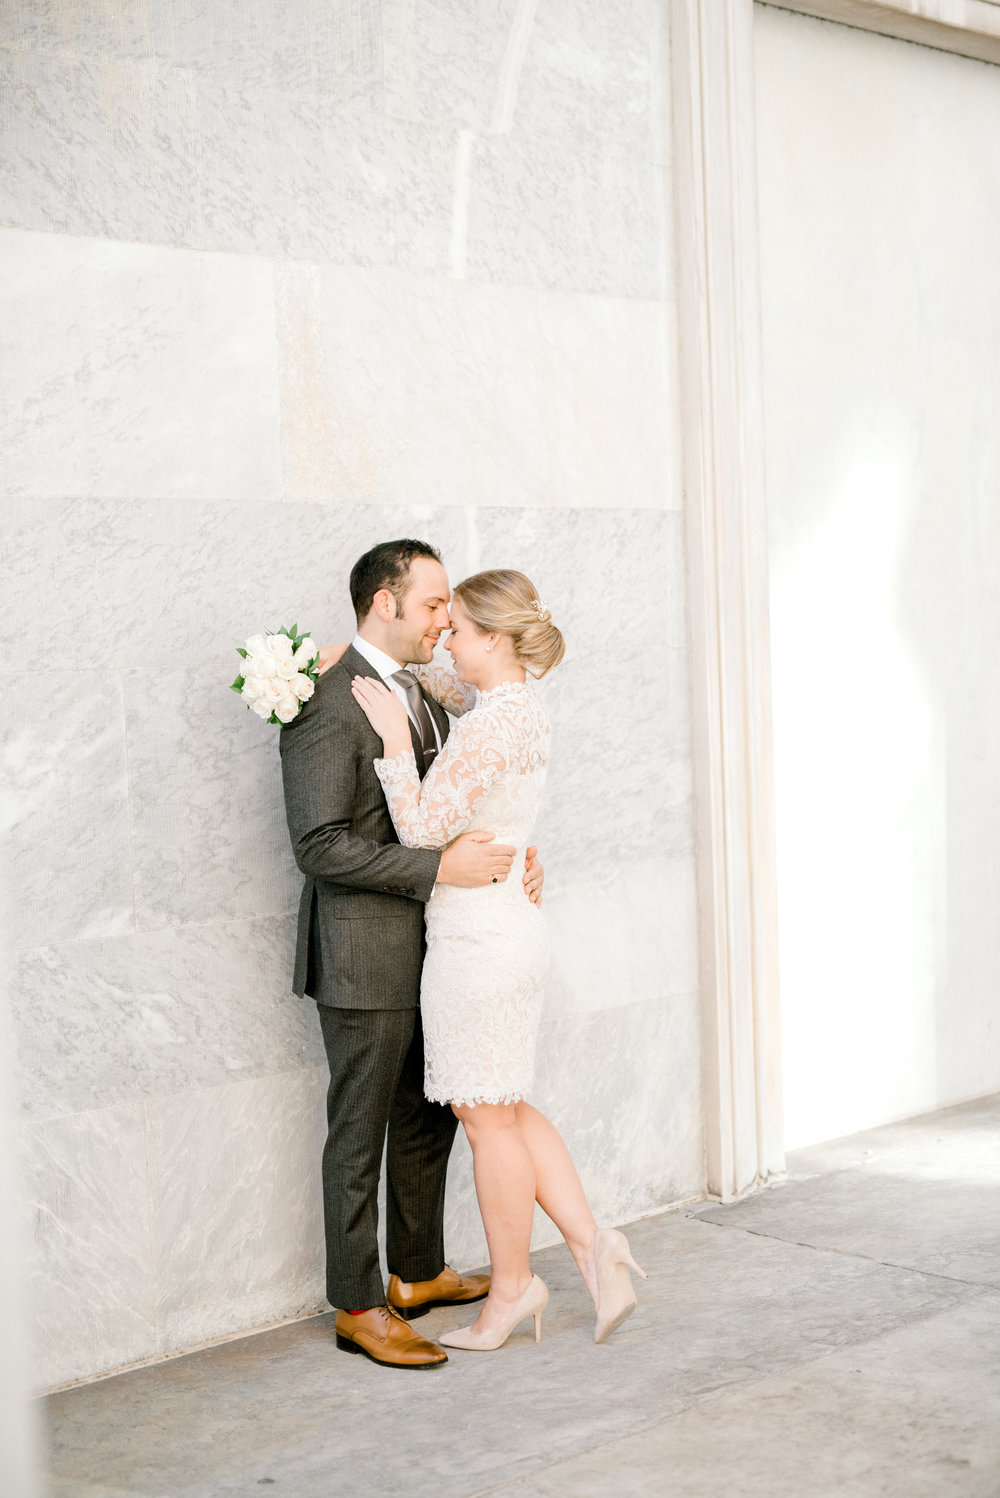 haley-richter-photography-philadelphia-city-hall-elopement-022.jpg